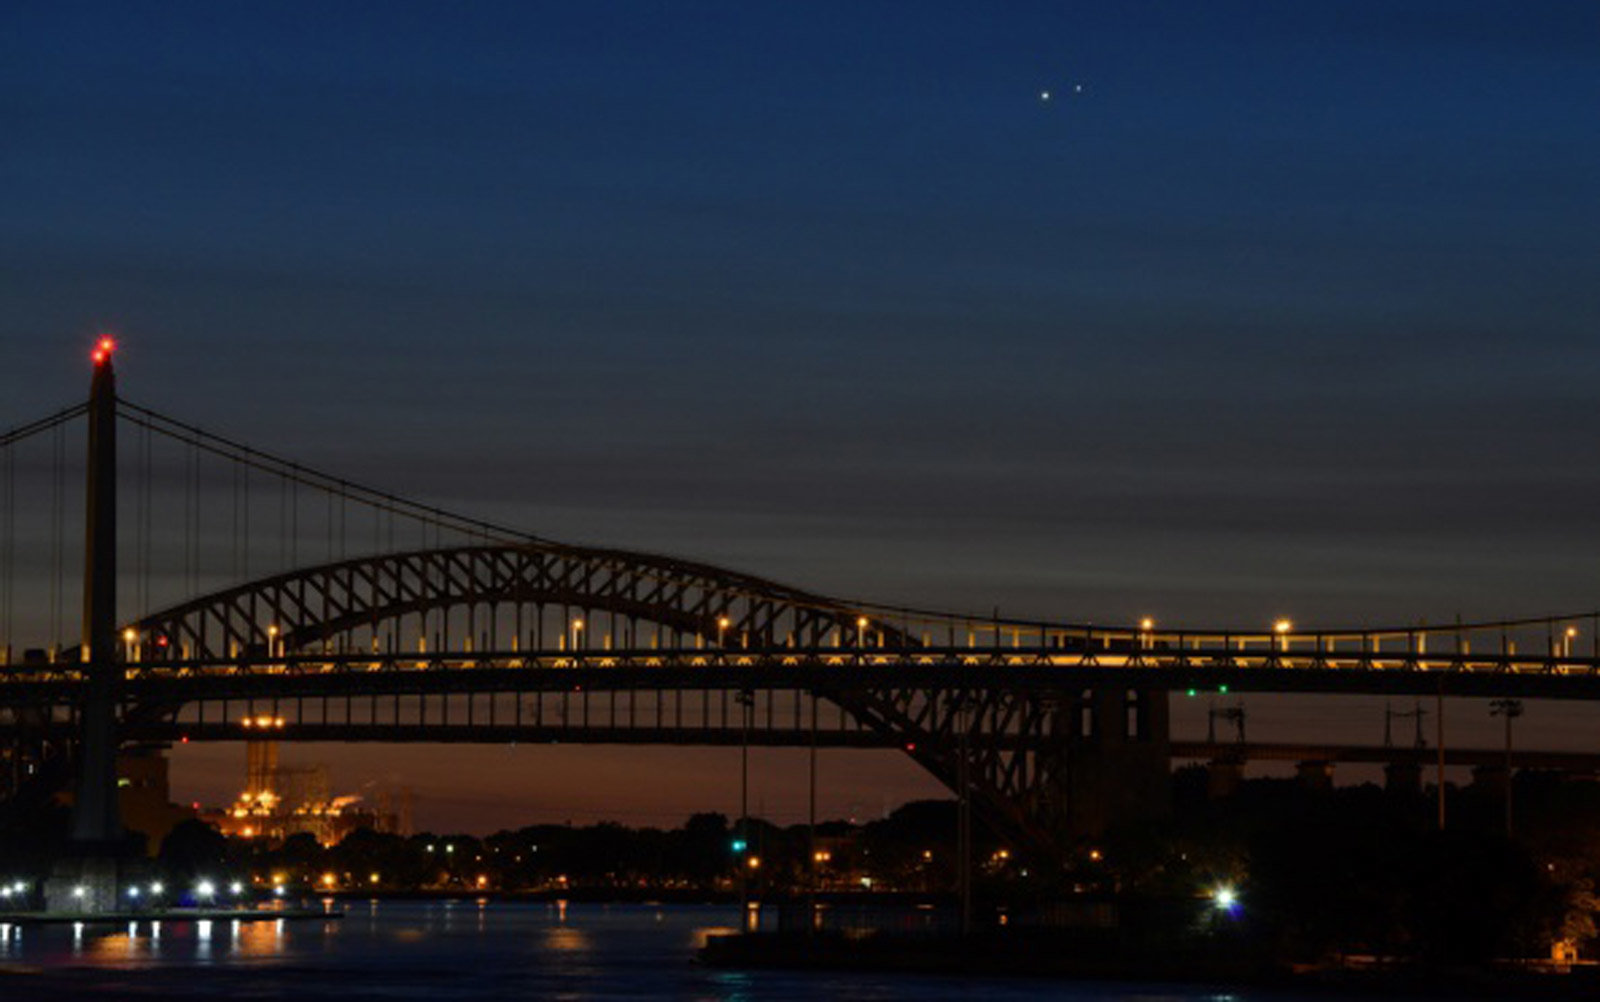 Venus (L) and Jupiter (R) rise together in a  rare conjunction over the Hell Gate (rear) and Robert F. Kennedy (front) Bridges in the early morning of August 18, 2014 in New York.